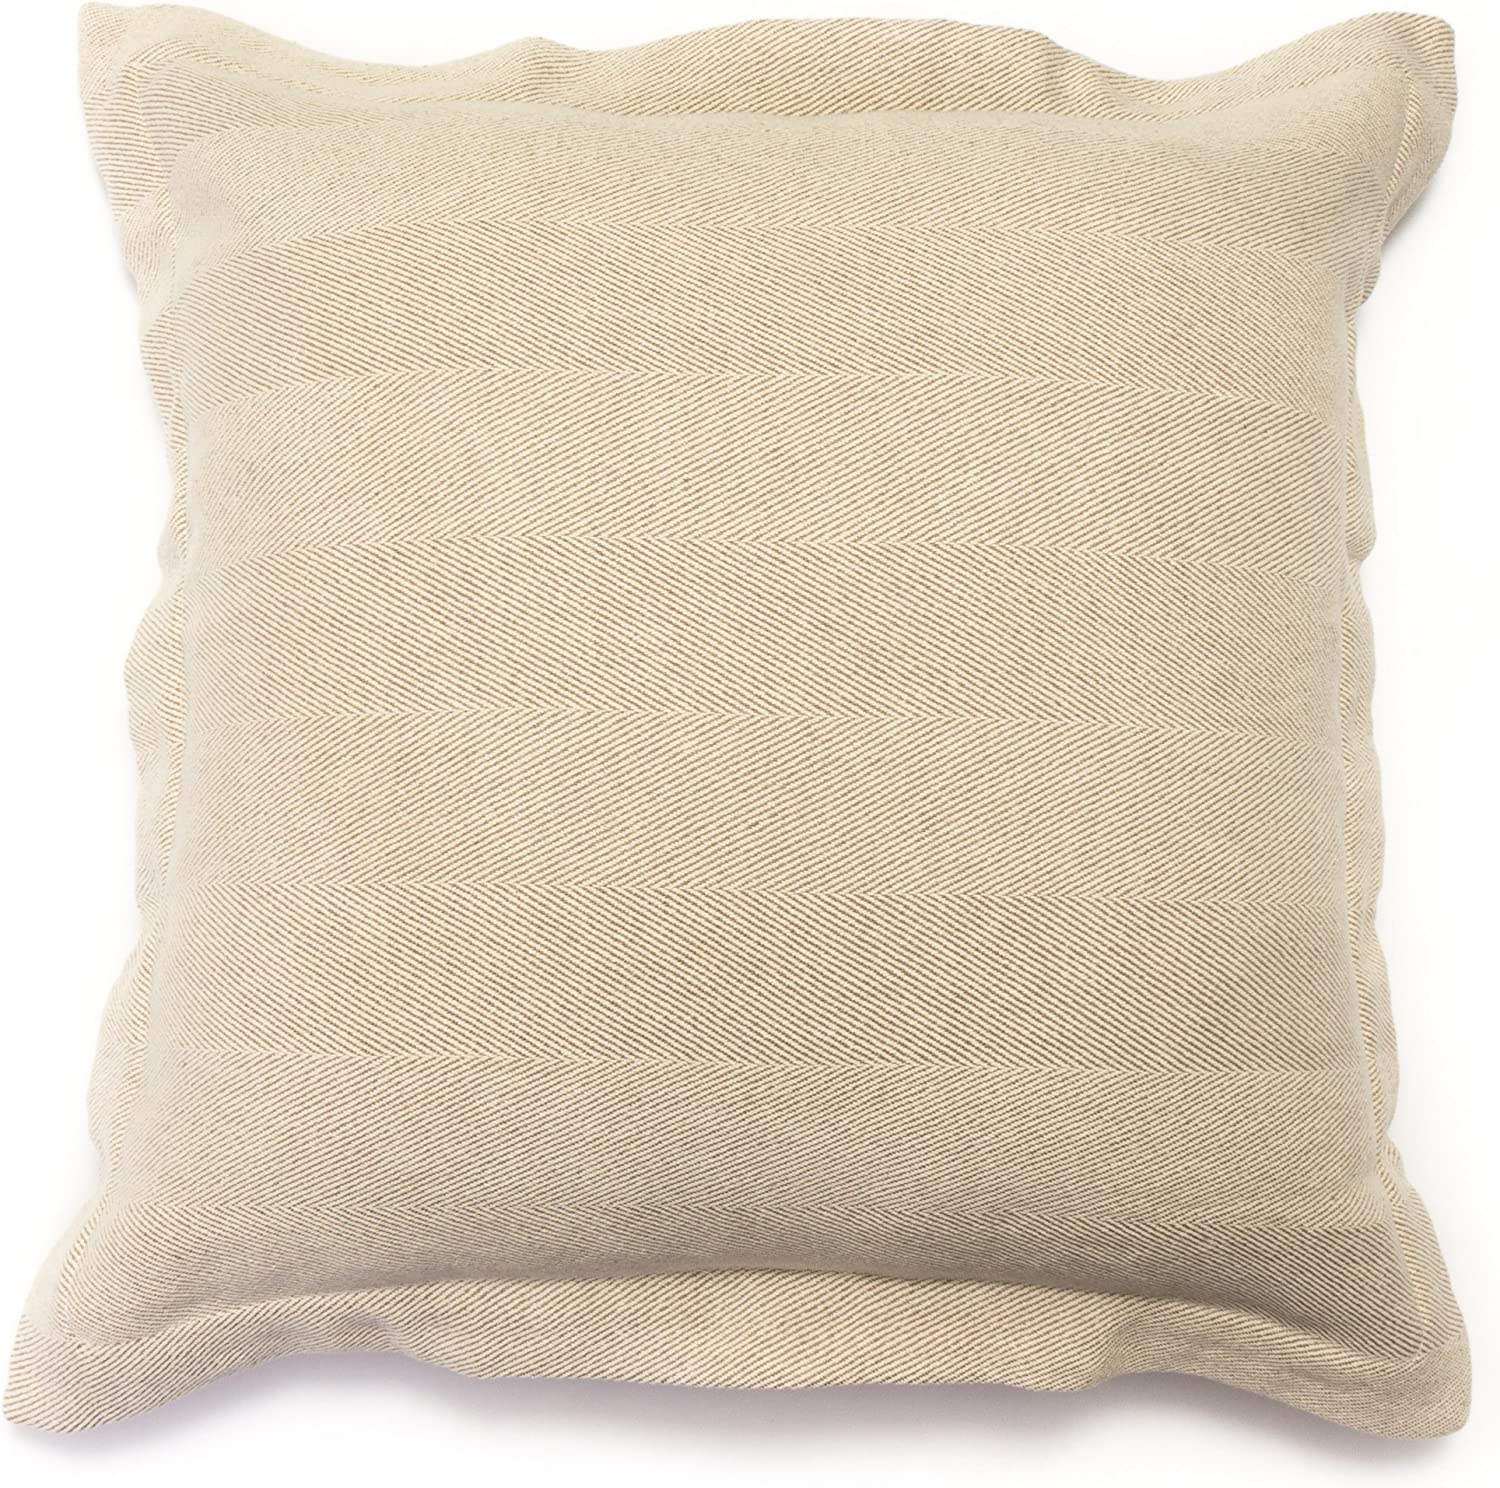 Be-You-tiful Home Beige Timothy Natural Euro Sham